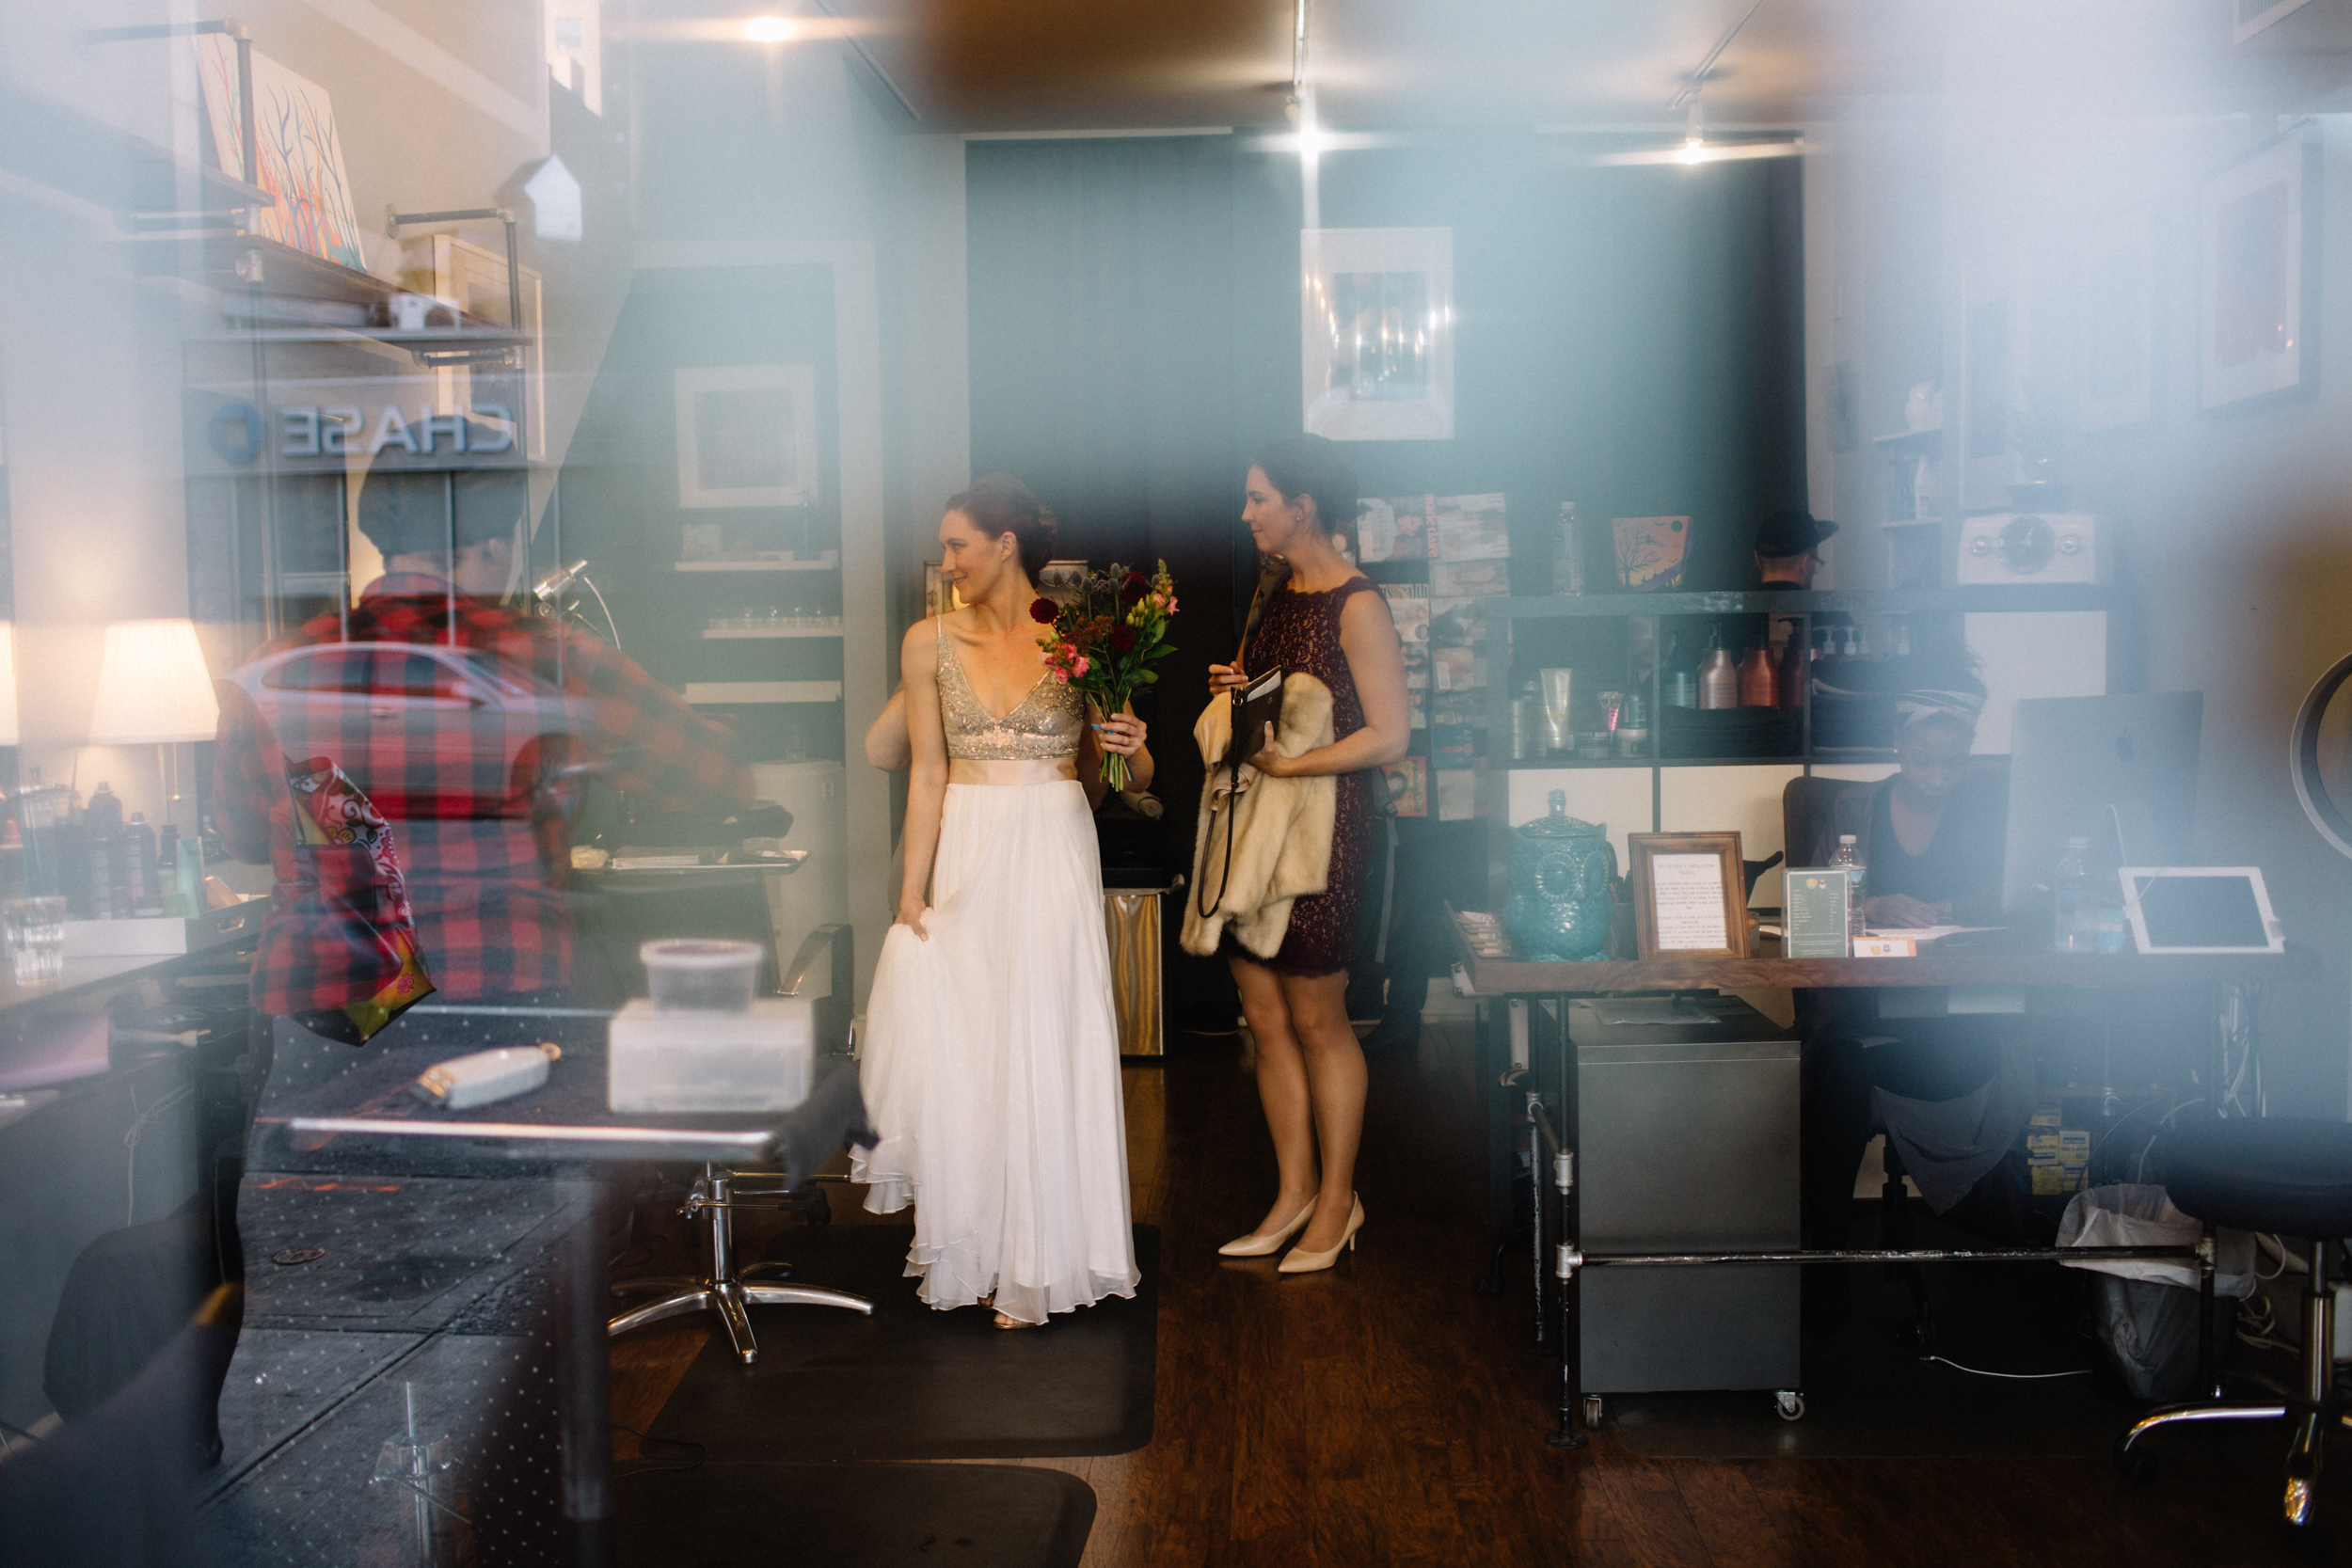 brooklynindustrialweddingphotographer-3-4